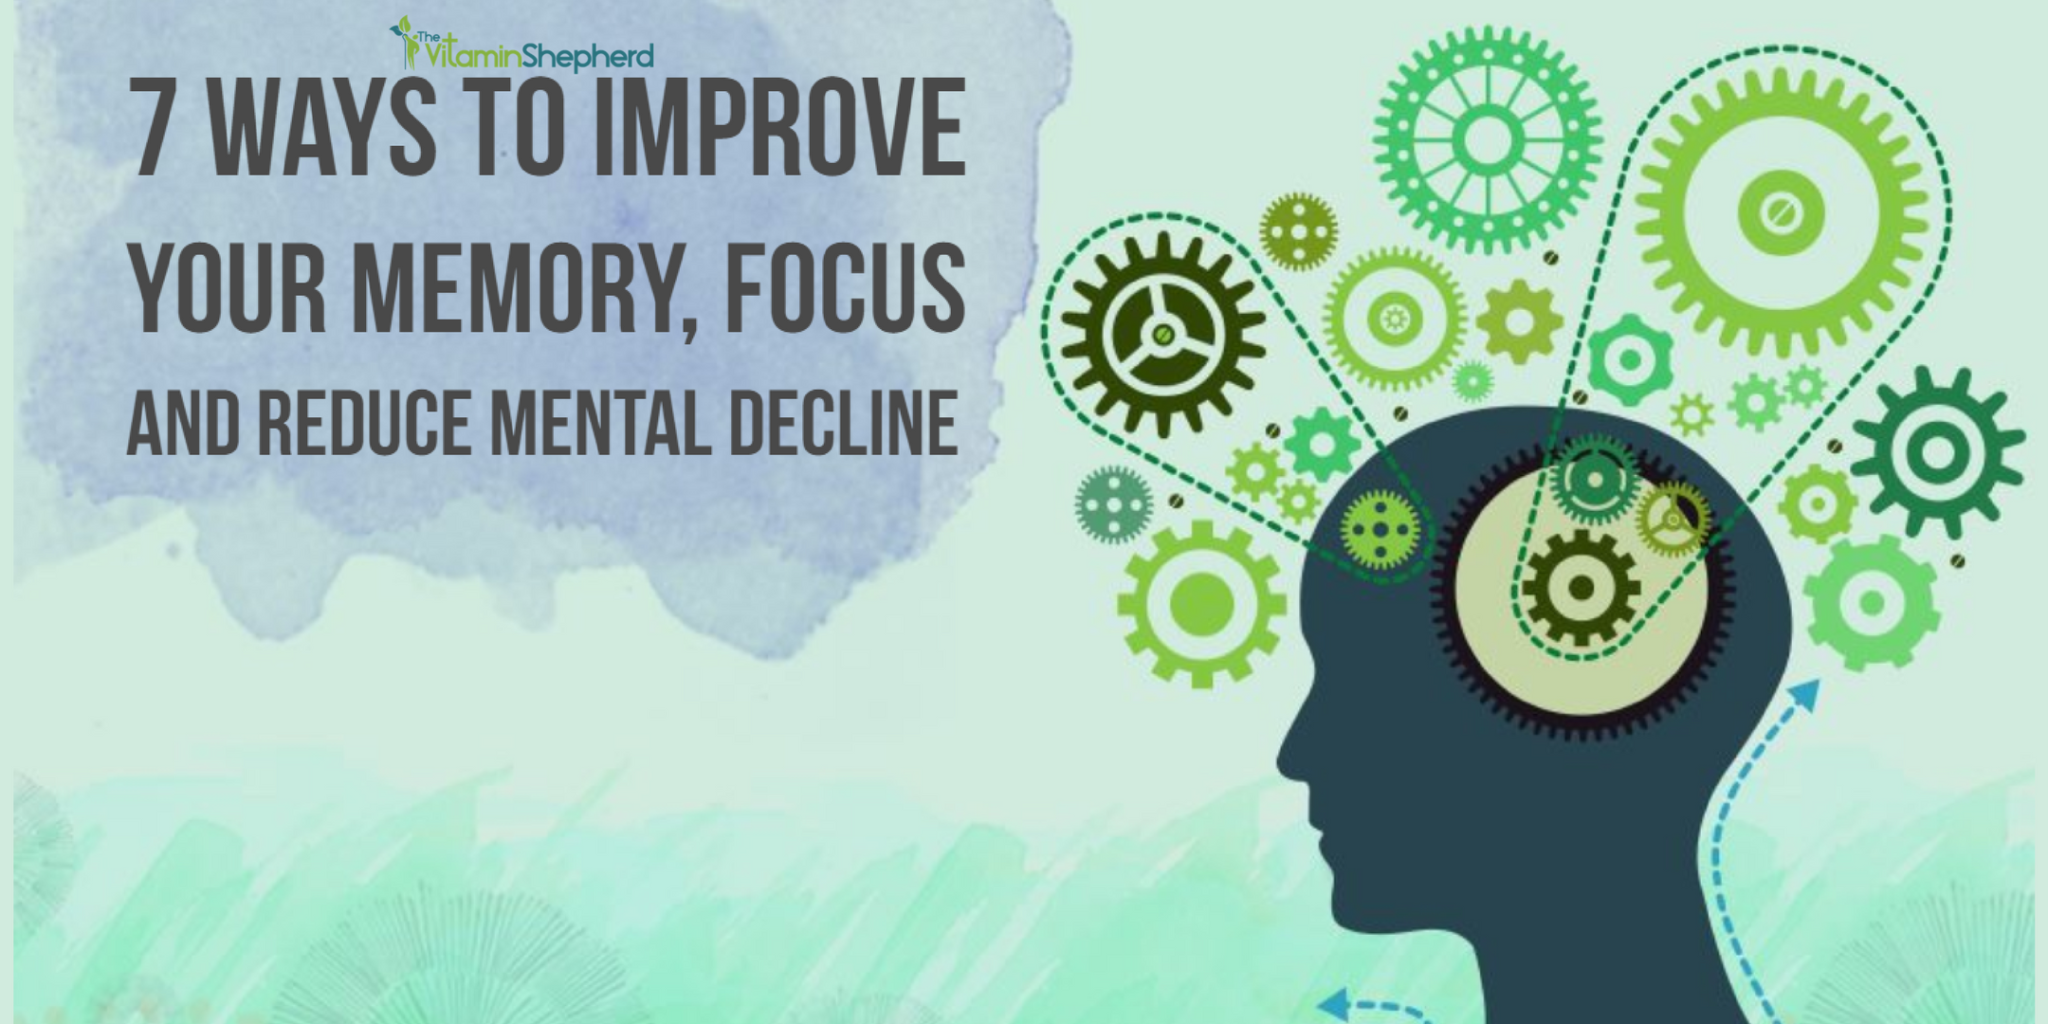 Check out 7 ways to improve your memory and focus